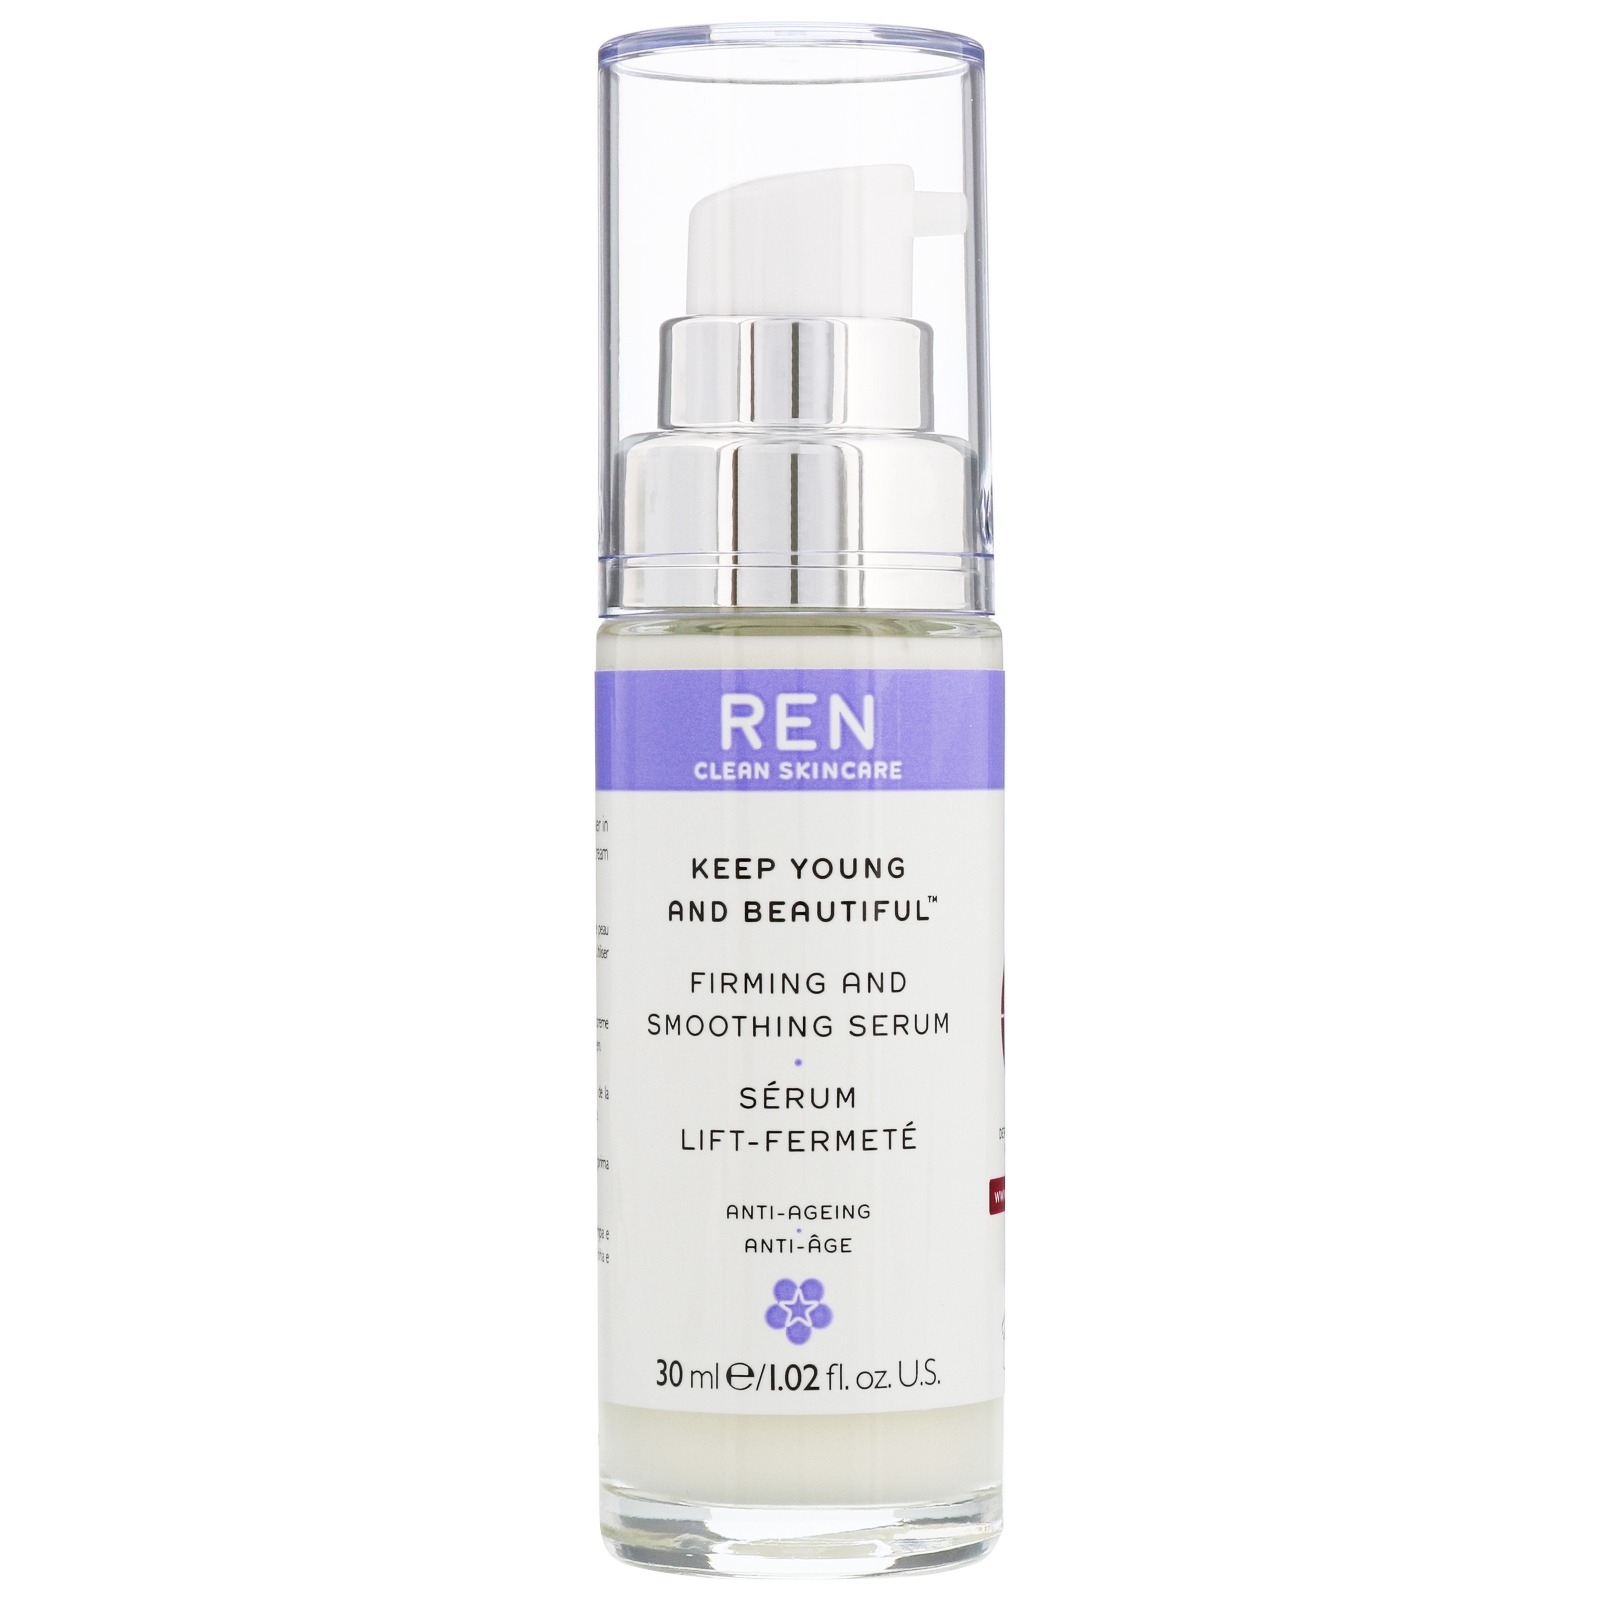 REN Clean Skincare Face Keep Young and Beautiful Firming and Smoothing Serum 30ml / 1.02 fl.oz.